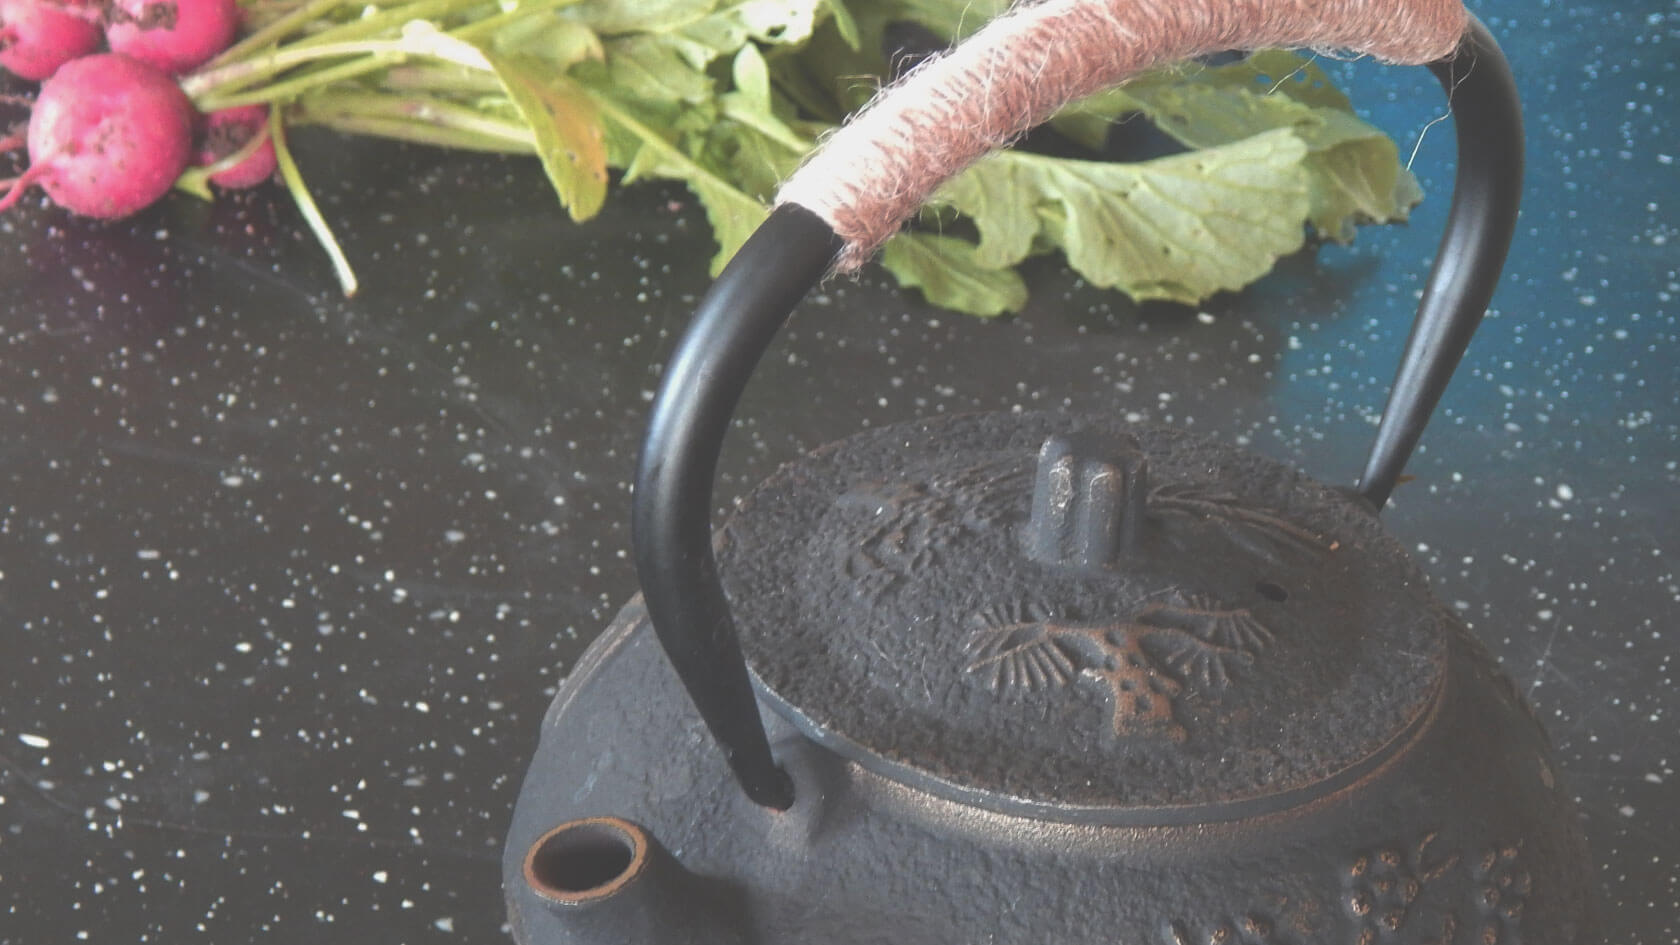 Traditional Japanese teapot and radishes